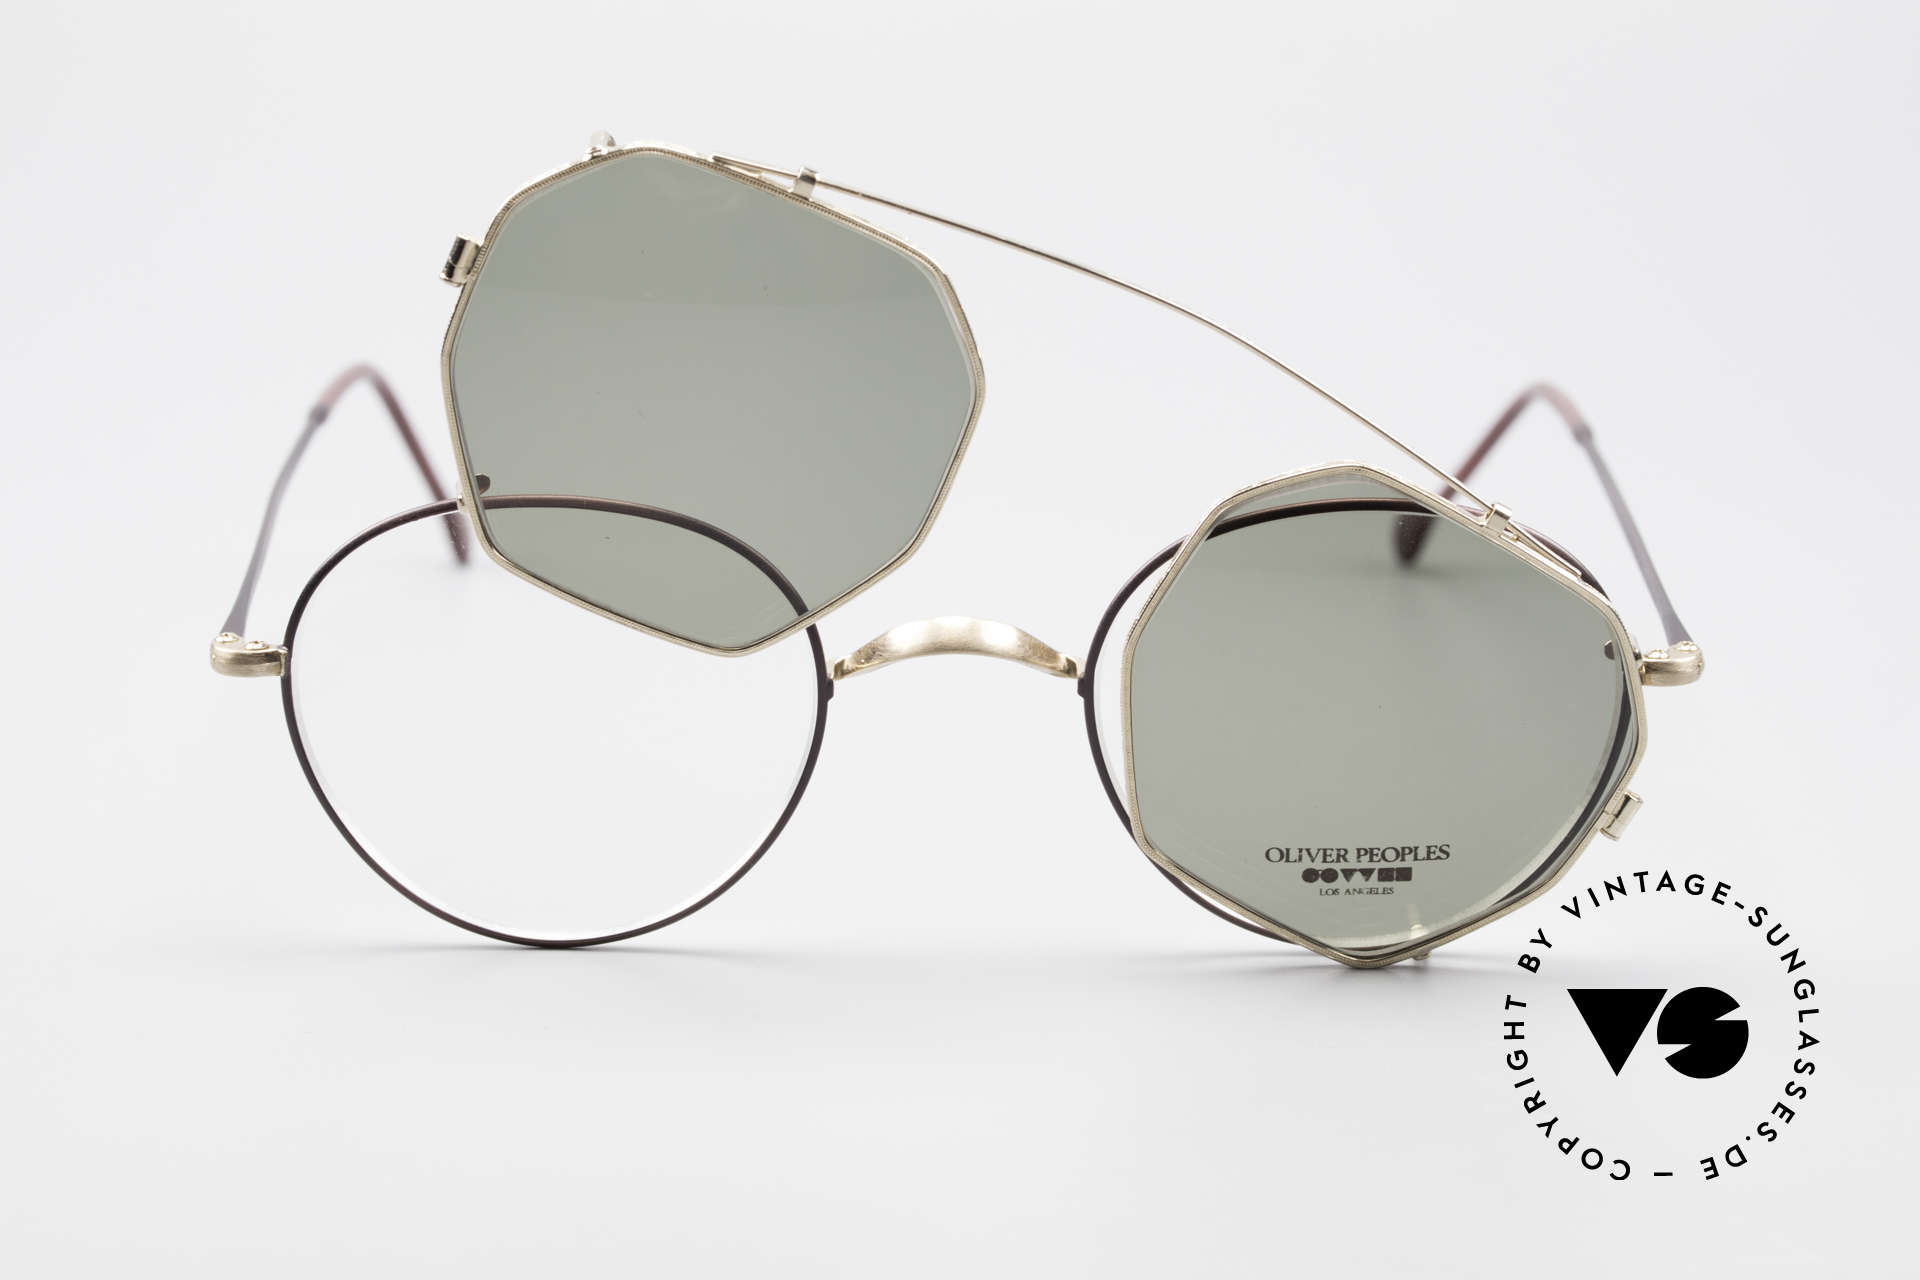 Oliver Peoples OP80BG 90's Vintage Frame Clip On, NO RETRO fashion, but a unique 25 years old Original, Made for Men and Women